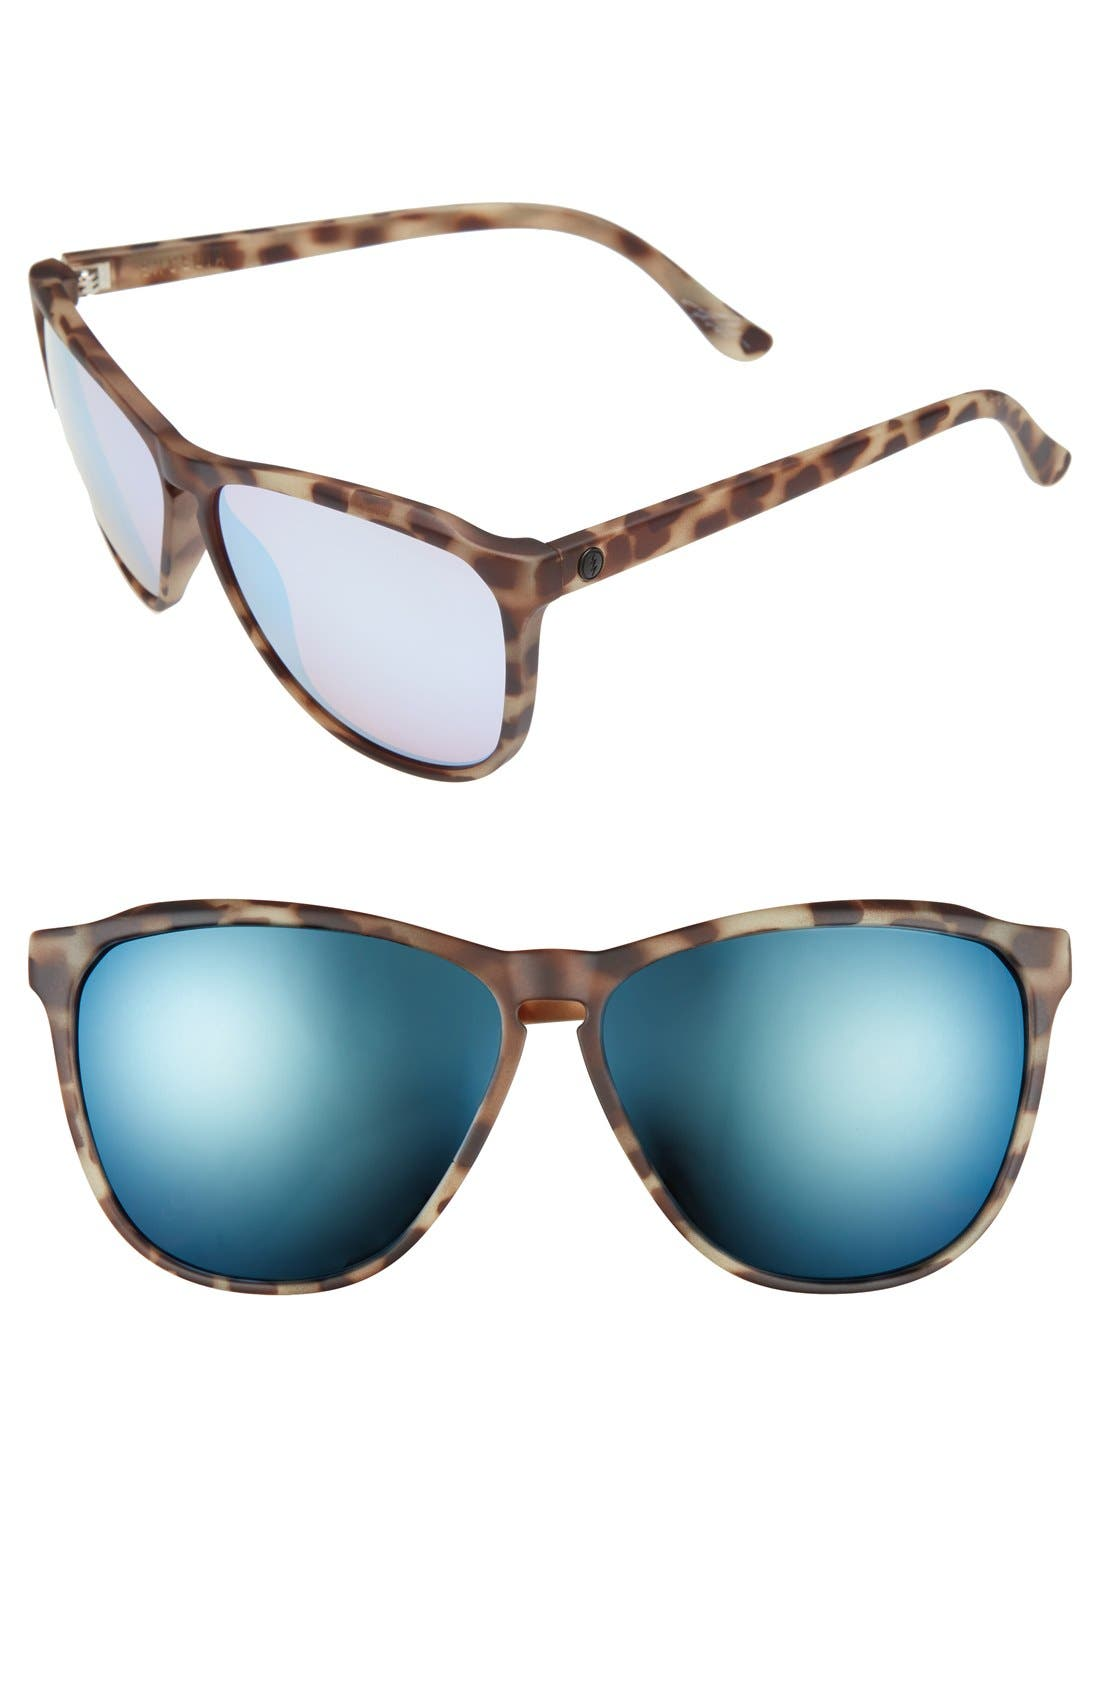 ELECTRIC 'Encelia' 61mm Retro Sunglasses